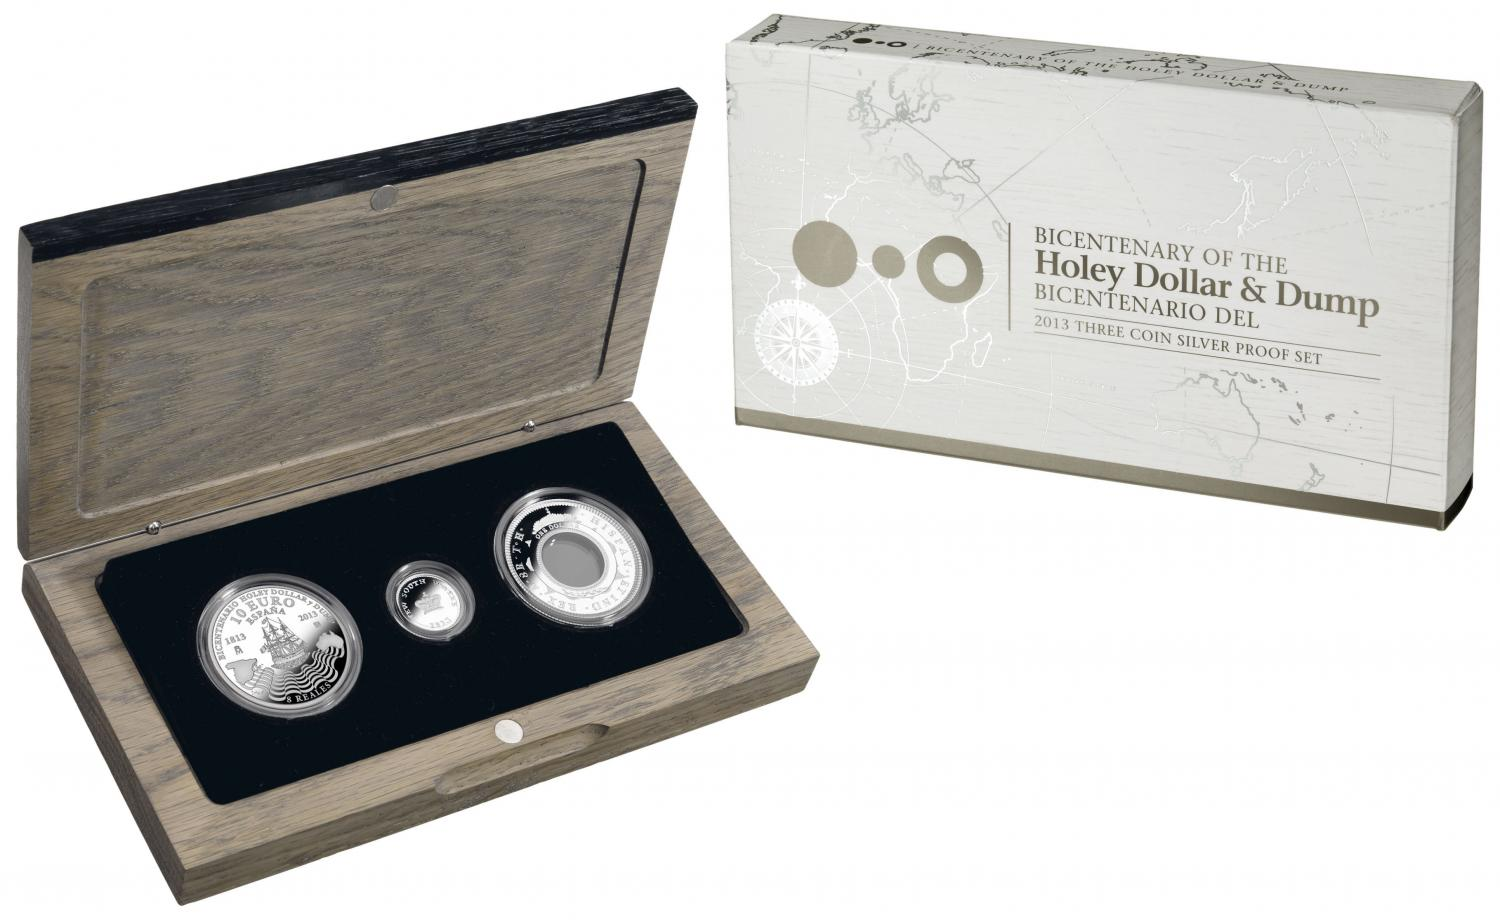 Thumbnail for 2013 Bicentenary of the Holey Dollar & Dump 3 Coin Silver Proof Set